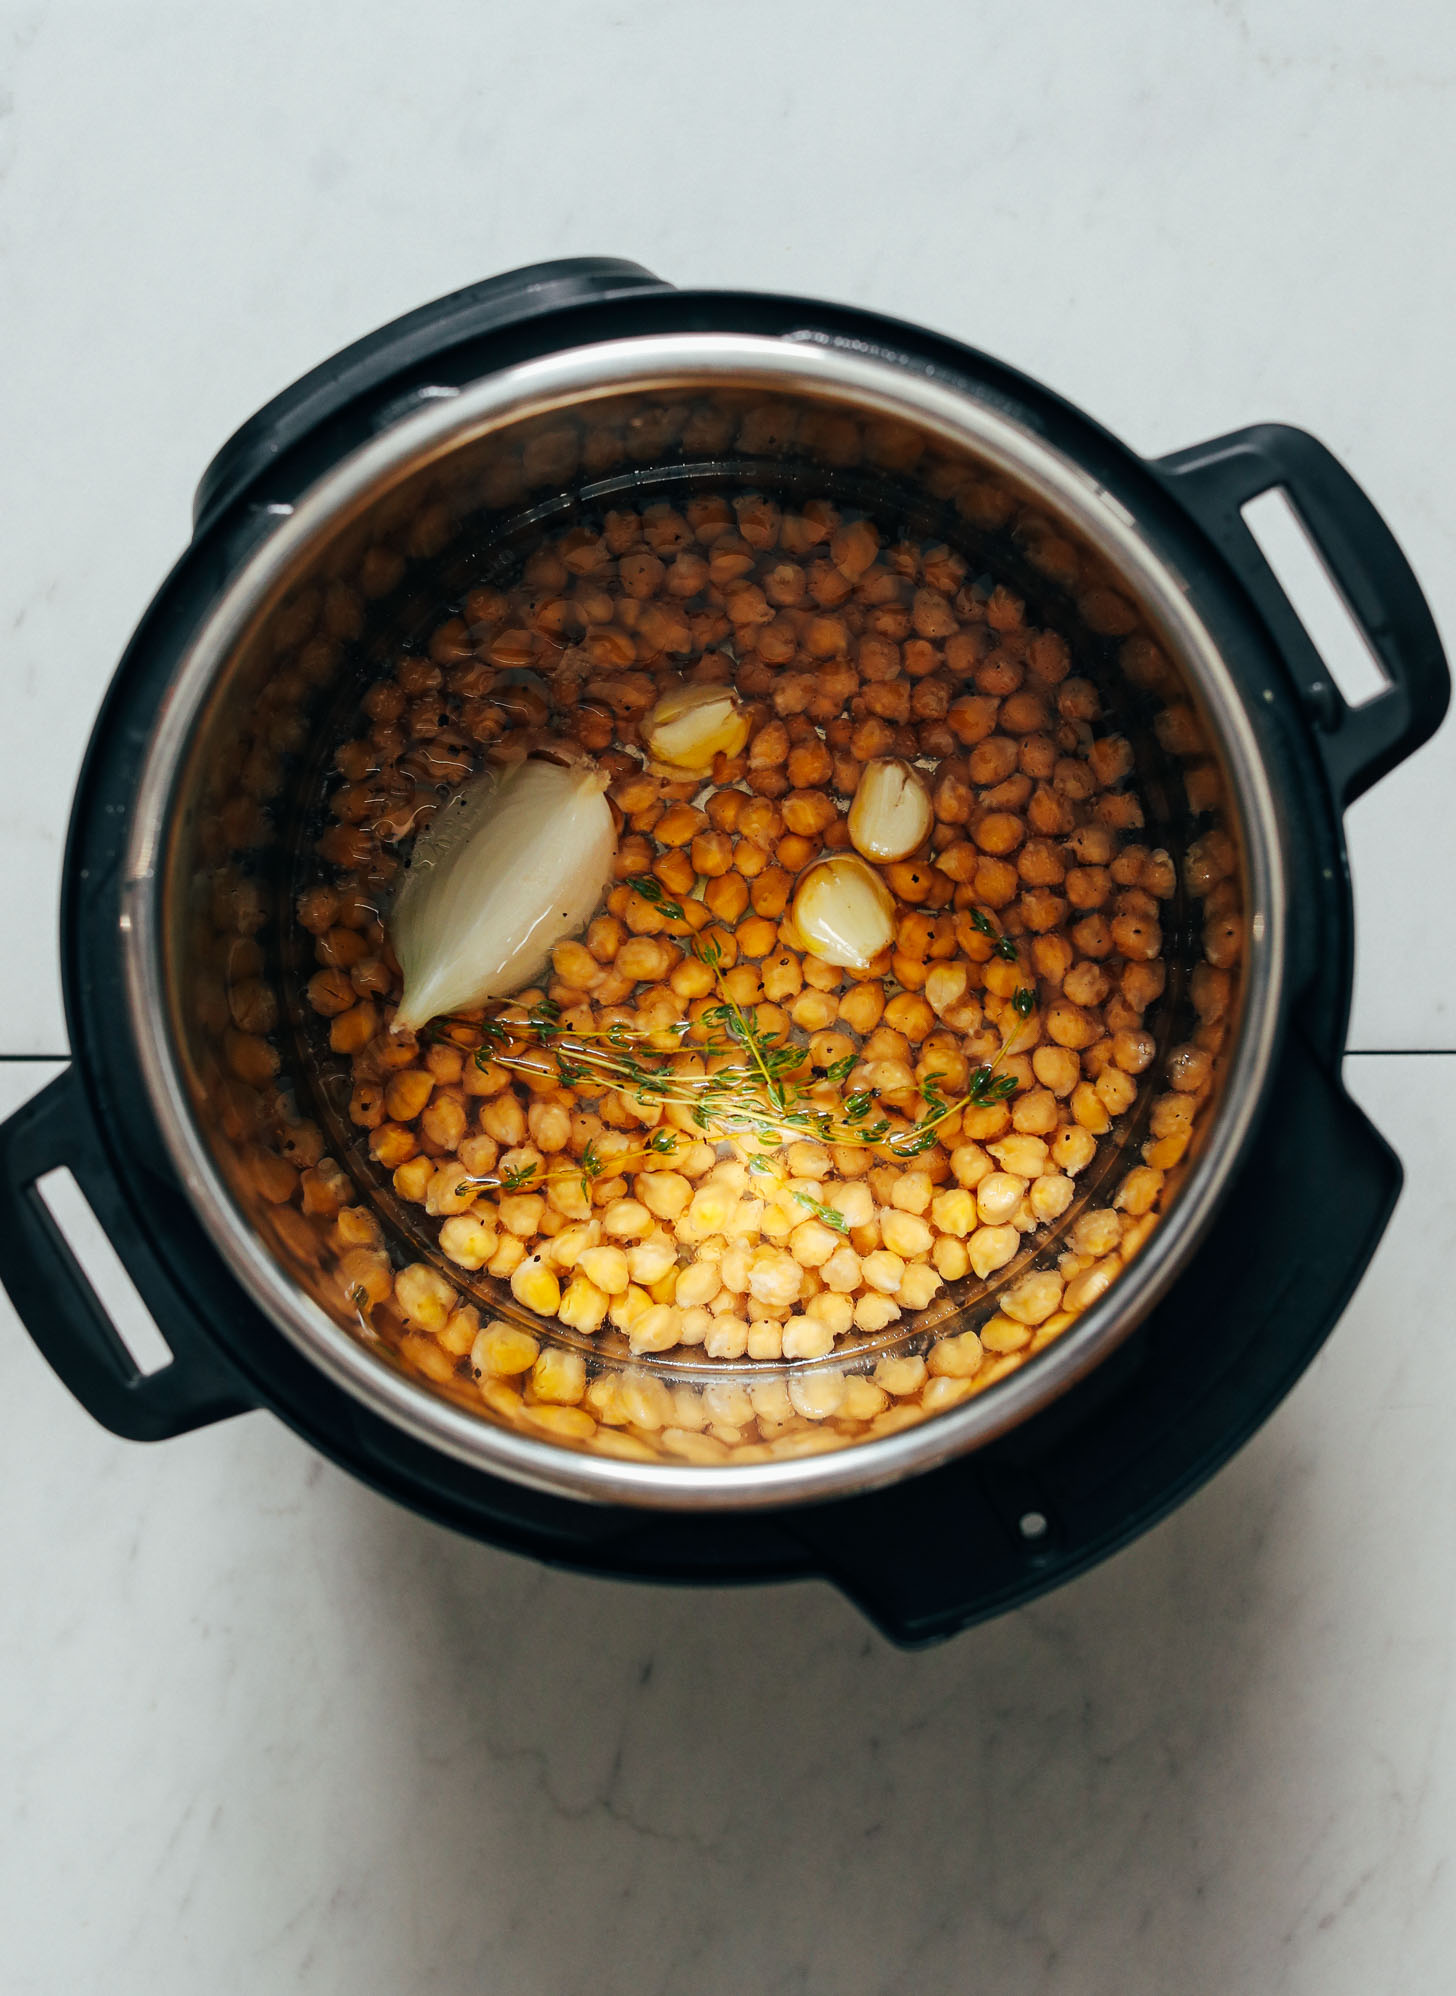 Instant pot with chickpeas, onion, garlic, and thyme